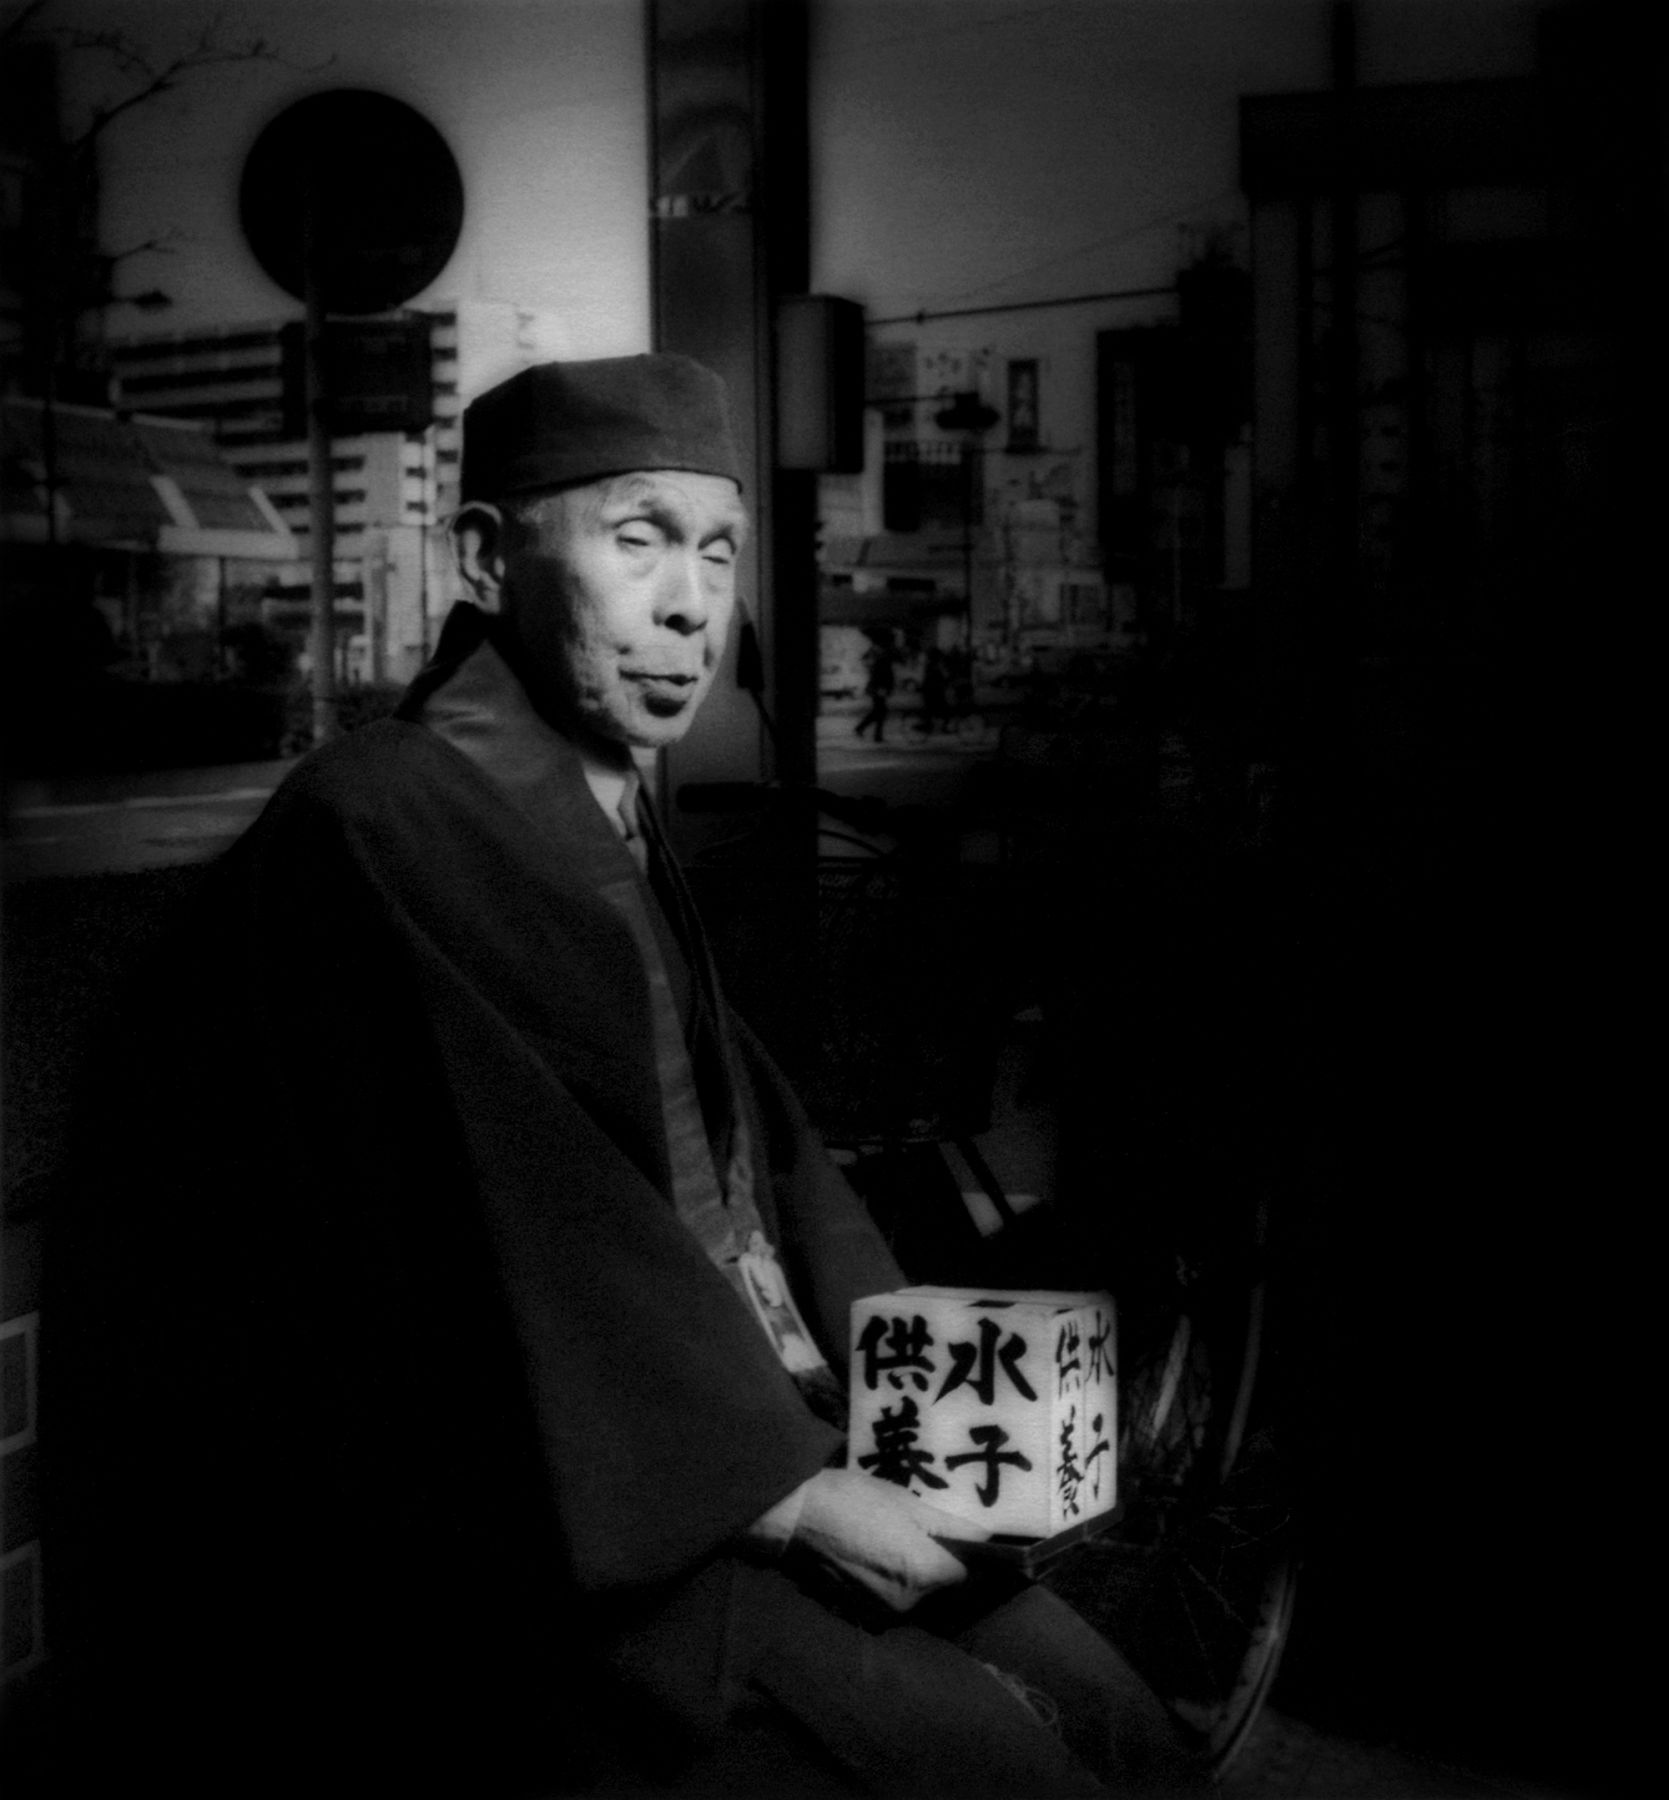 James Whitlow Delano, Mangaland, Scrutinized by fortuneteller, Sugamo, Tokyo, Japan, 1995, Sous Les Etoiles Gallery